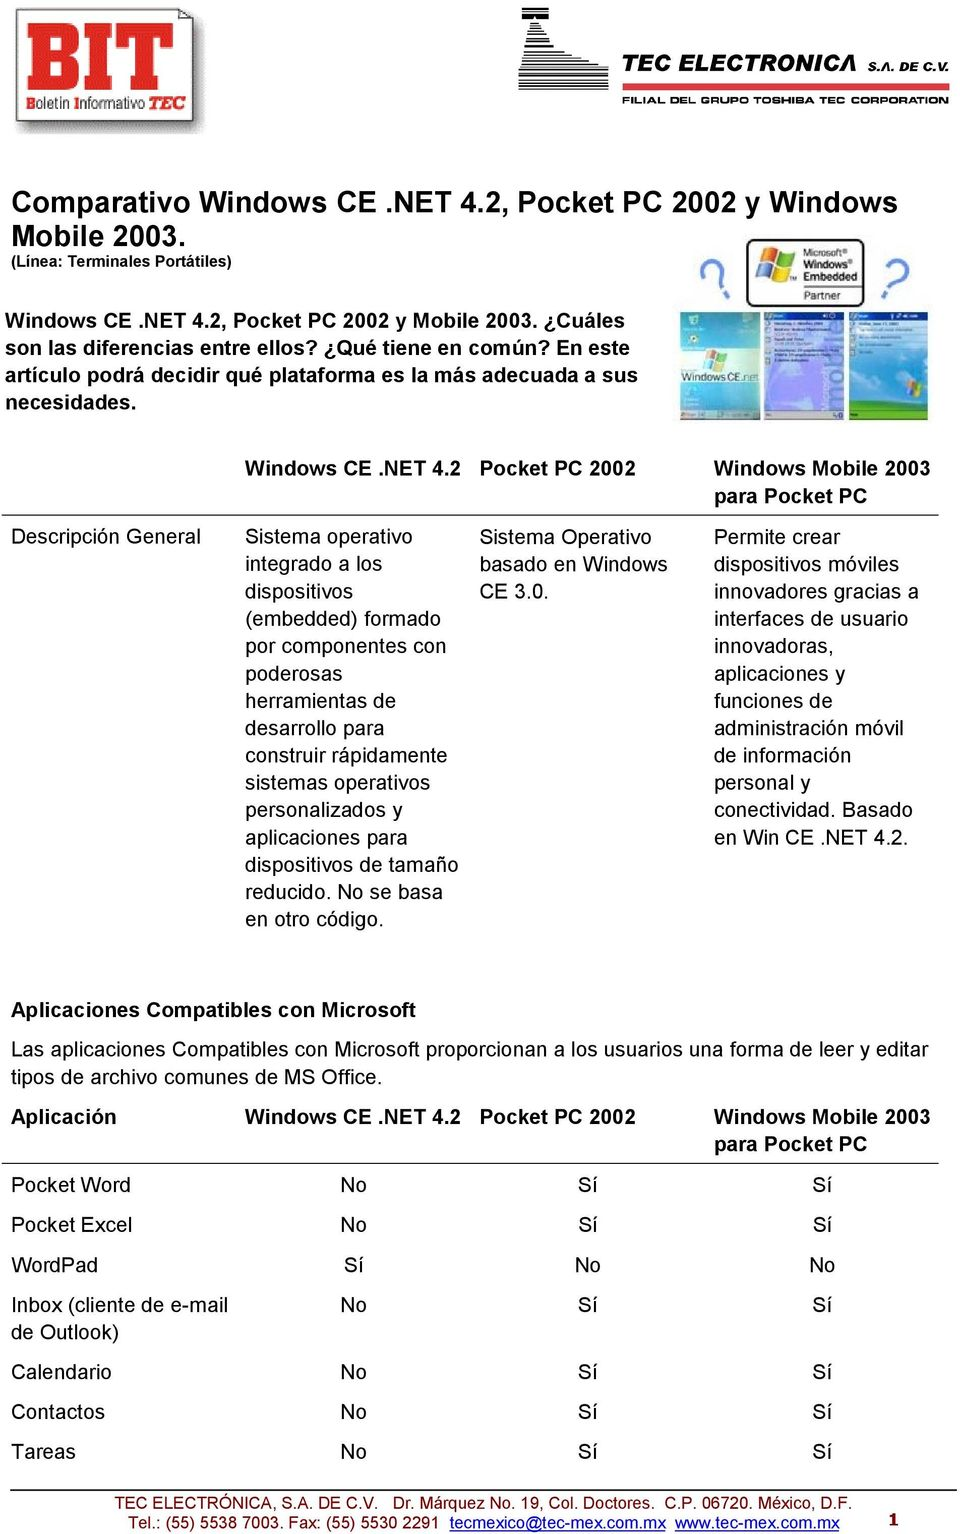 2 Pocket PC 2002 Windows Mobile 2003 Descripción General Sistema operativo integrado a los dispositivos (embedded) formado por componentes con poderosas herramientas de desarrollo para construir